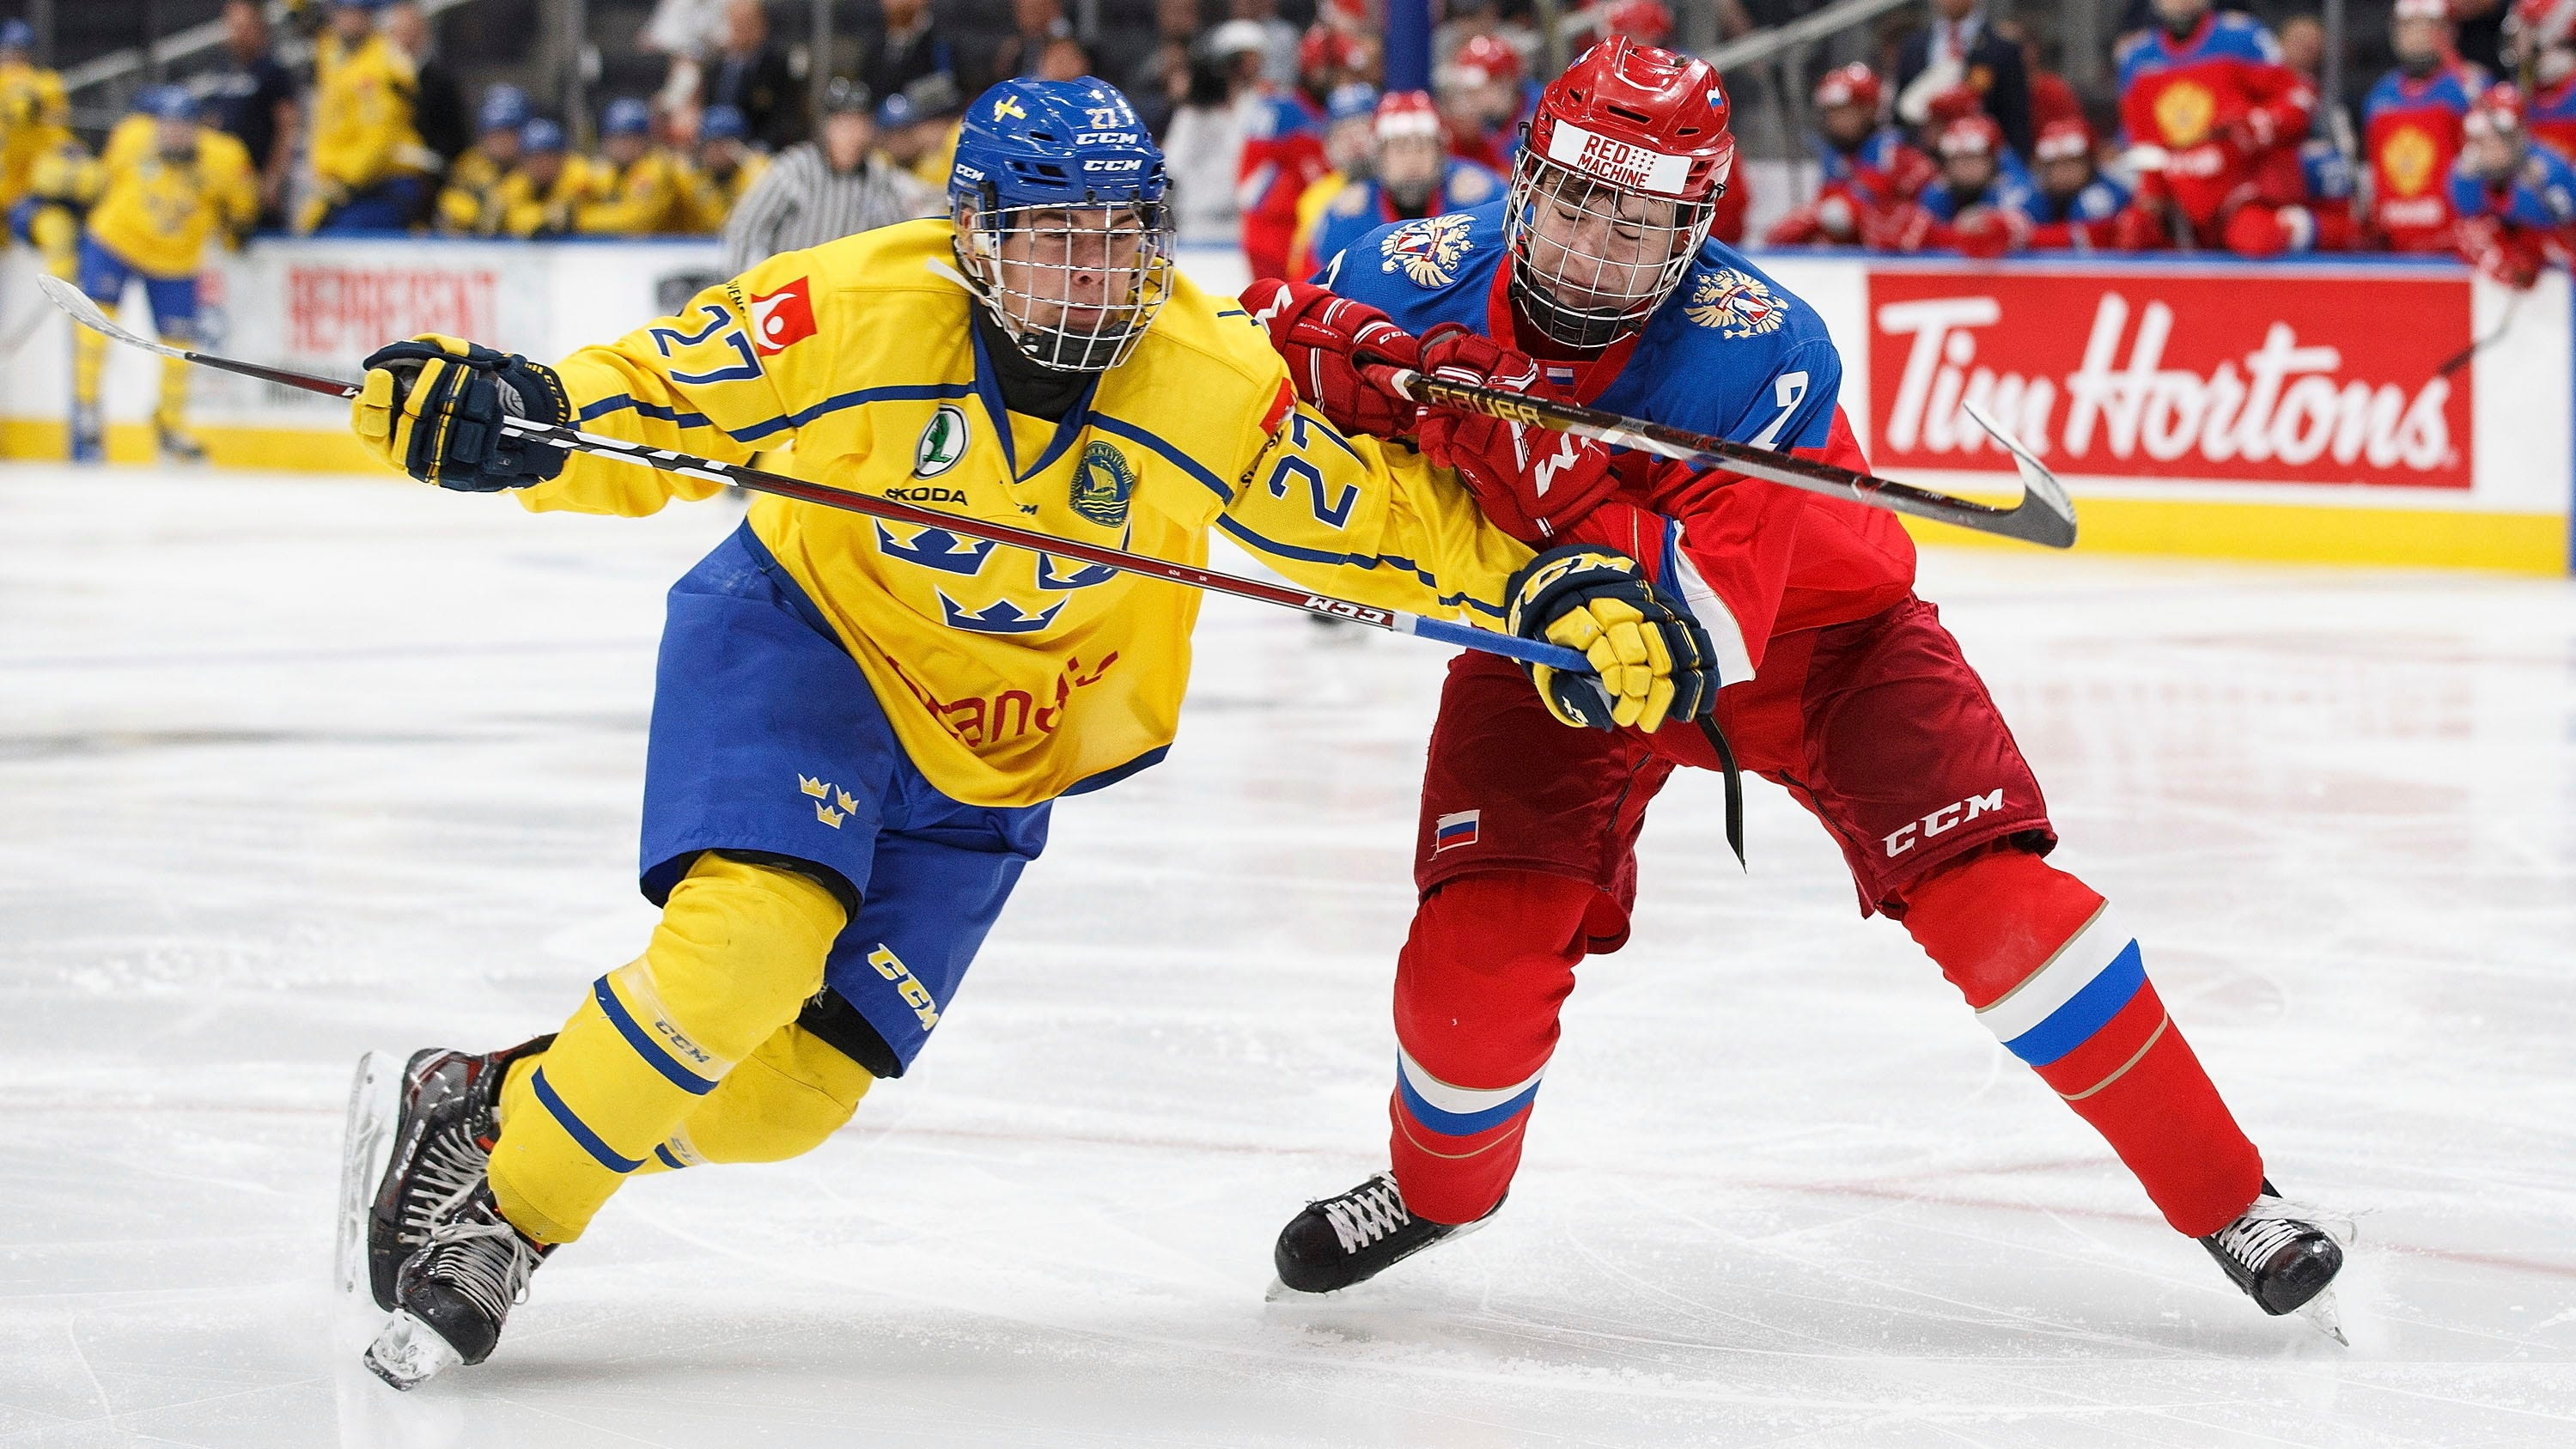 High Scoring Swedish Players Draw Attention In Plymouth As Possible Detroit Red Wings Draft Picks